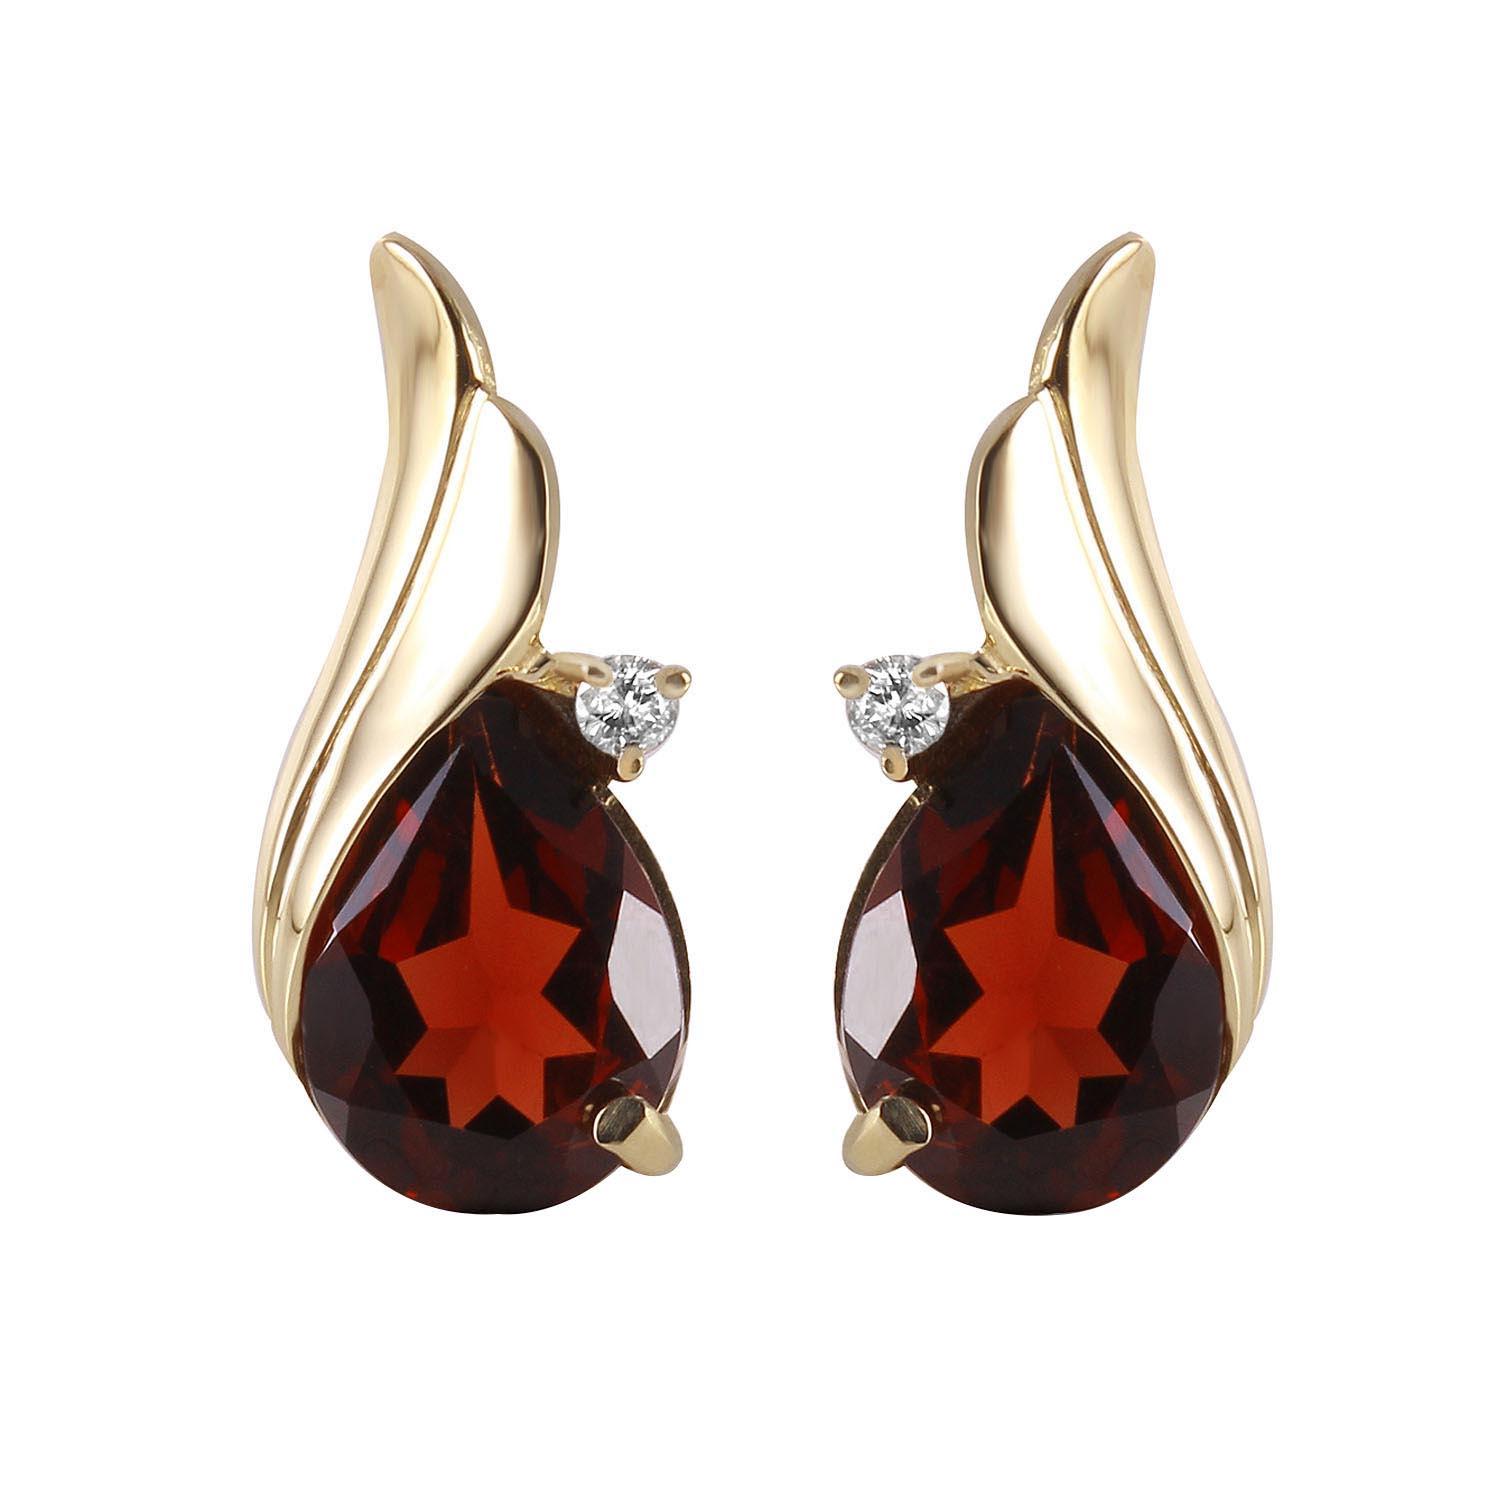 Garnet and Diamond Stud Earrings 4.0ctw in 9ct Gold